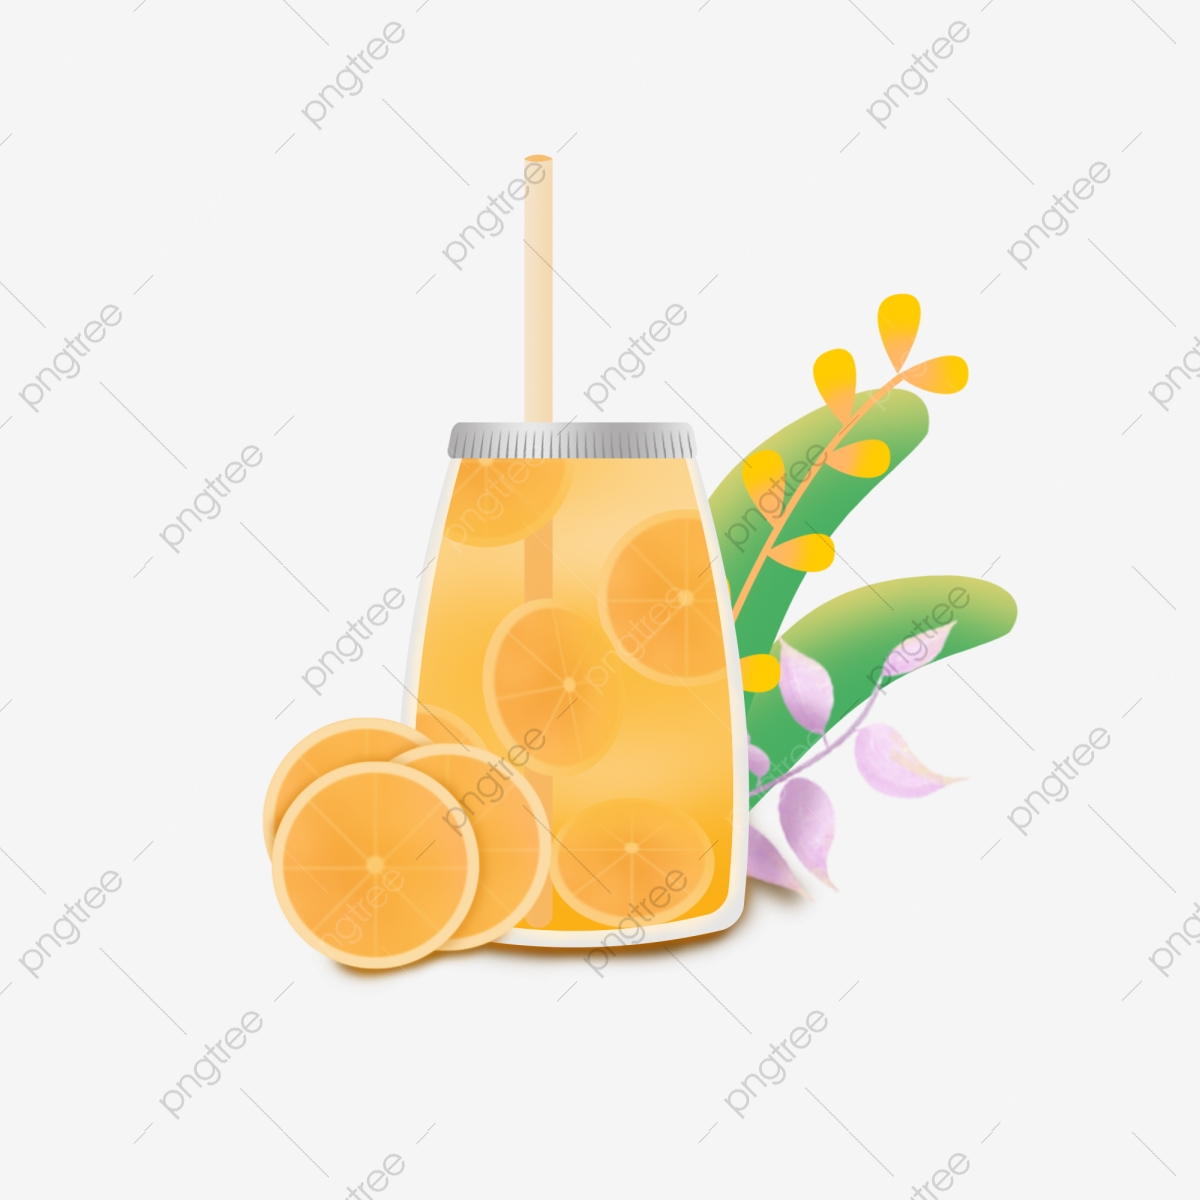 kartun teh jus jeruk yang digambar tangan kartun lukisan tangan jus jeruk png transparan gambar clipart dan file psd untuk unduh gratis https id pngtree com freepng cartoon hand drawn orange juice milk tea 5409551 html